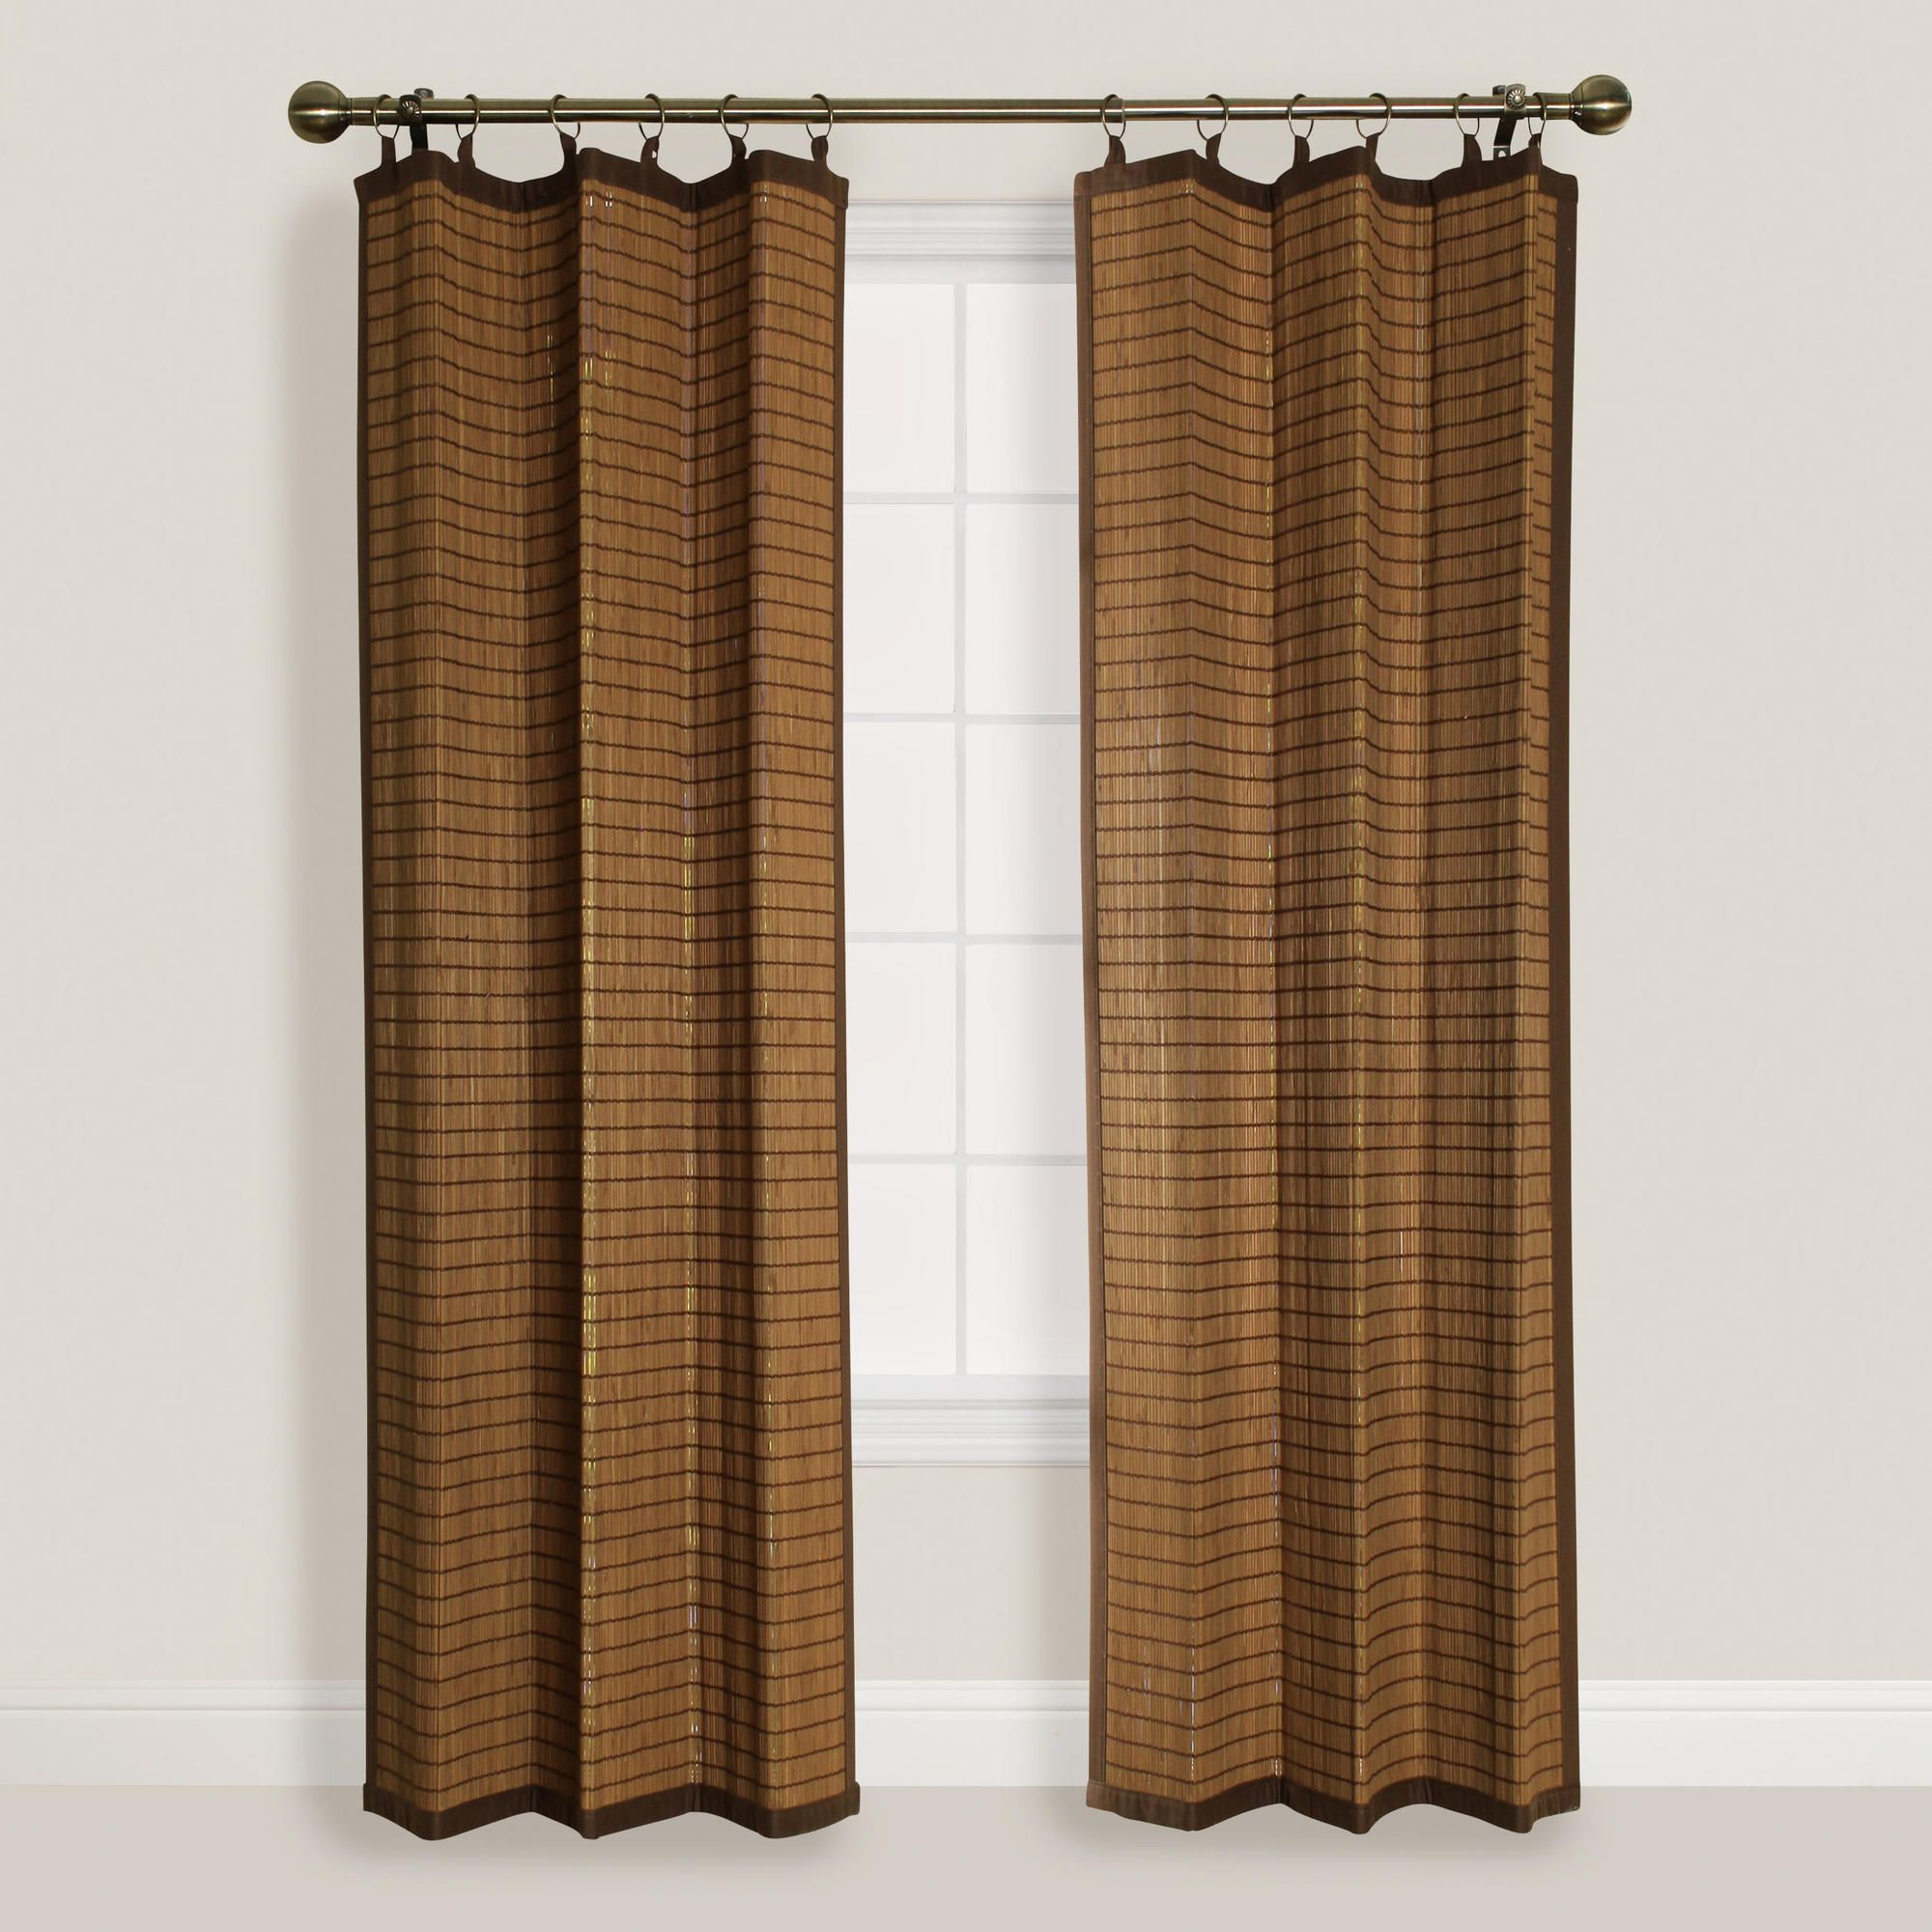 Colonial Bamboo Ring Top Curtains World Market